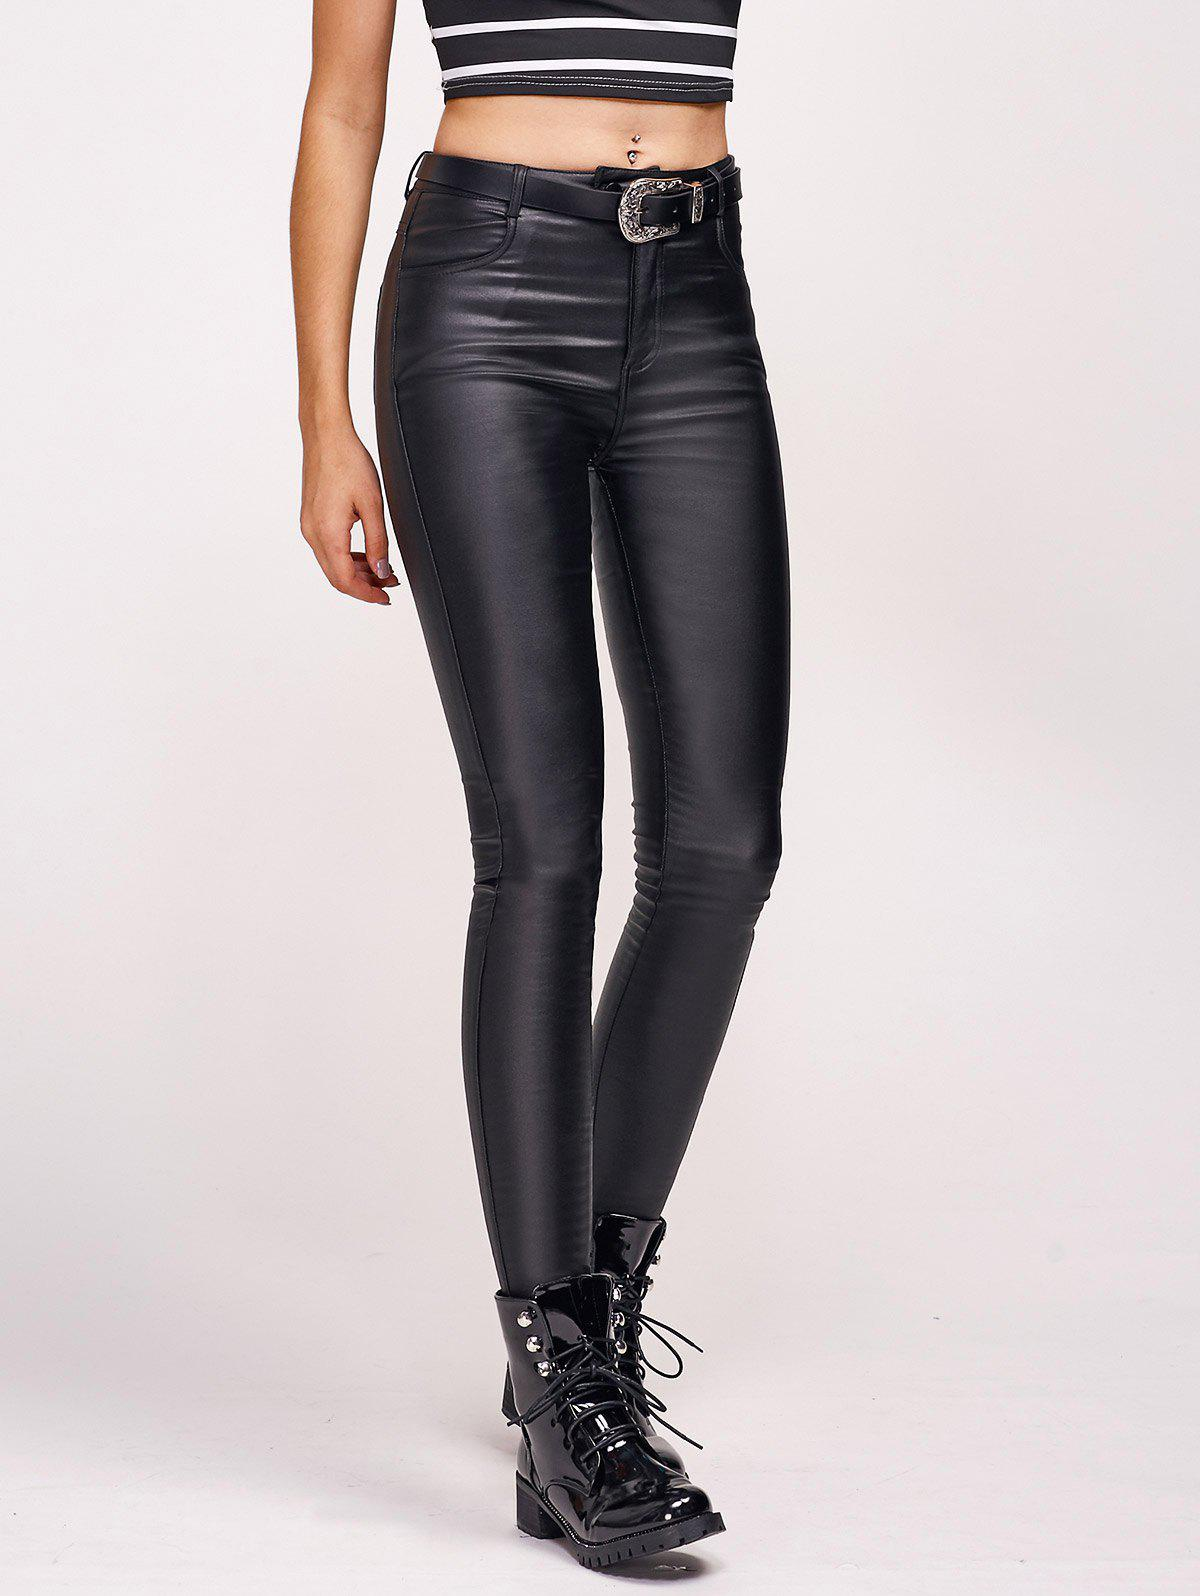 Faux Leather Flocking Stretchy Pants - BLACK M